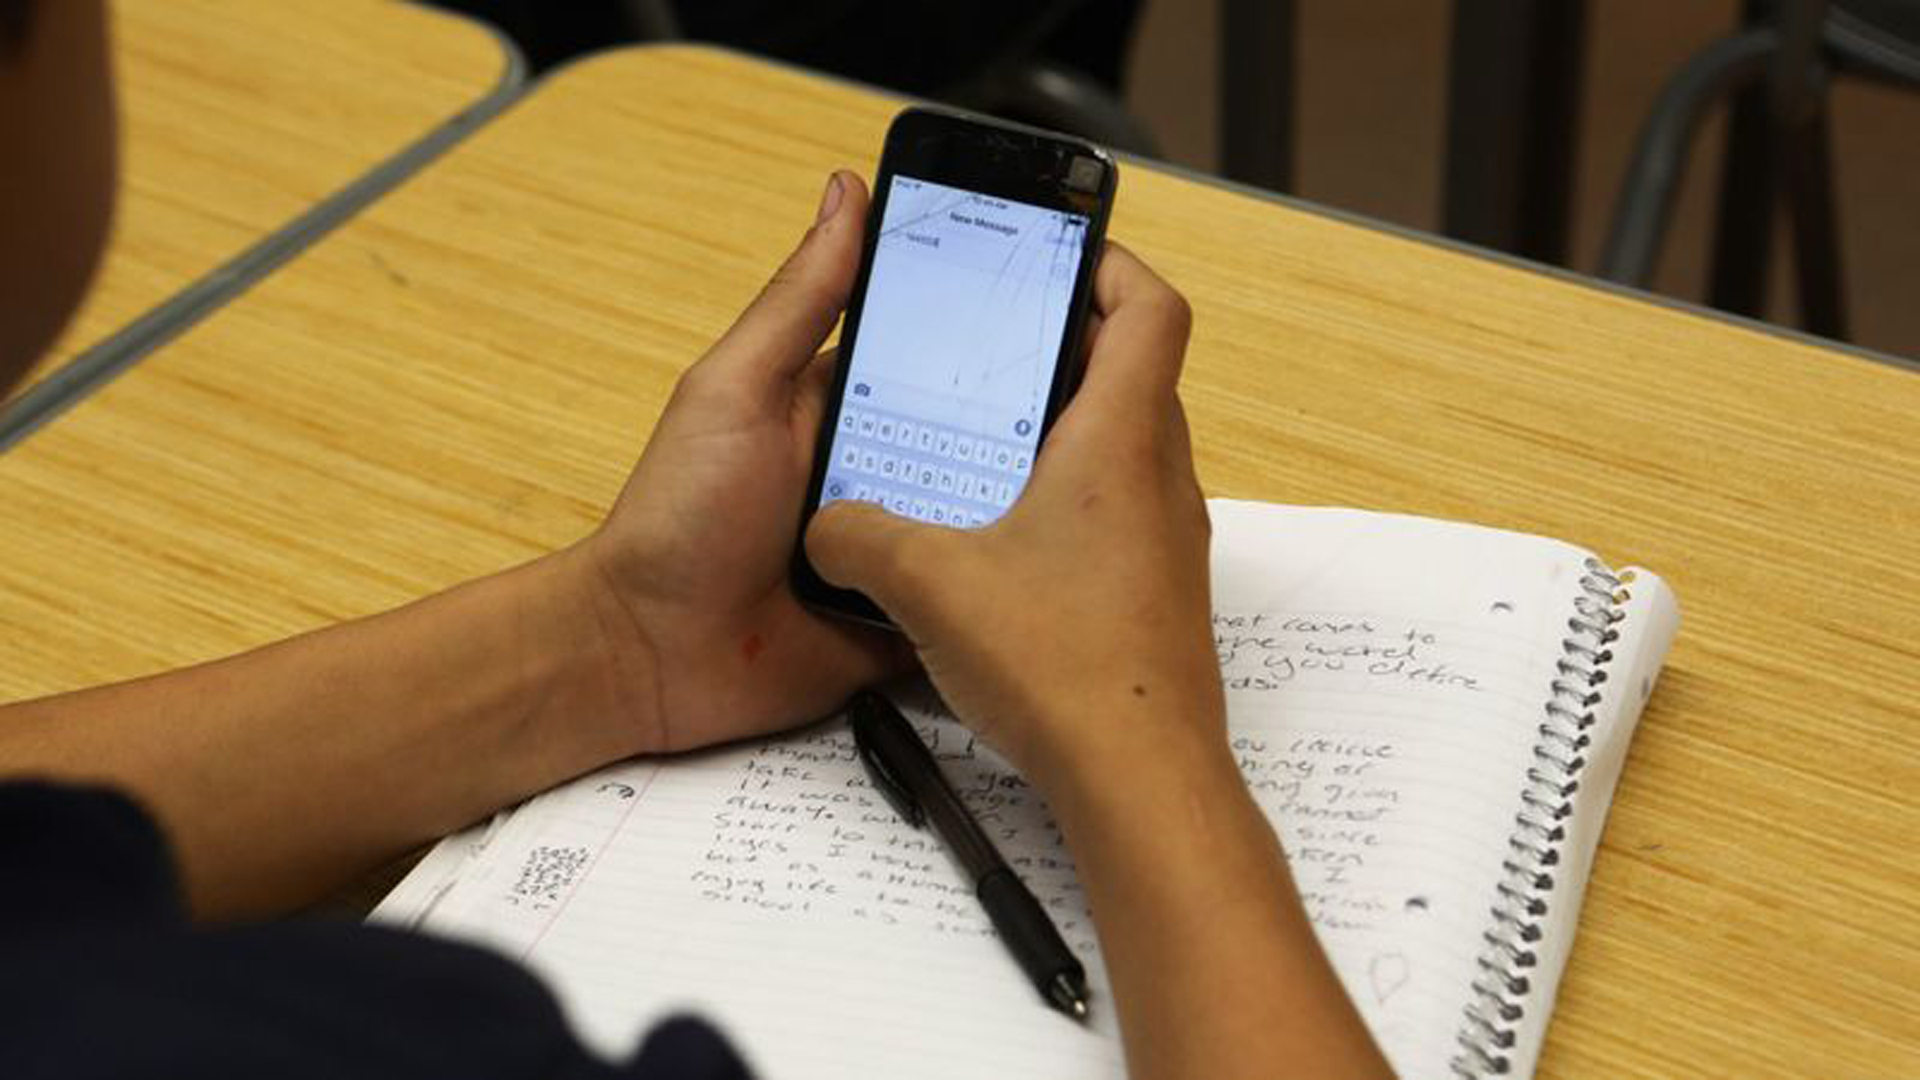 The Times reported last year that 73% of teens carried a smartphone in 2016. (Credit: Anne Cusack / Los Angeles Times)